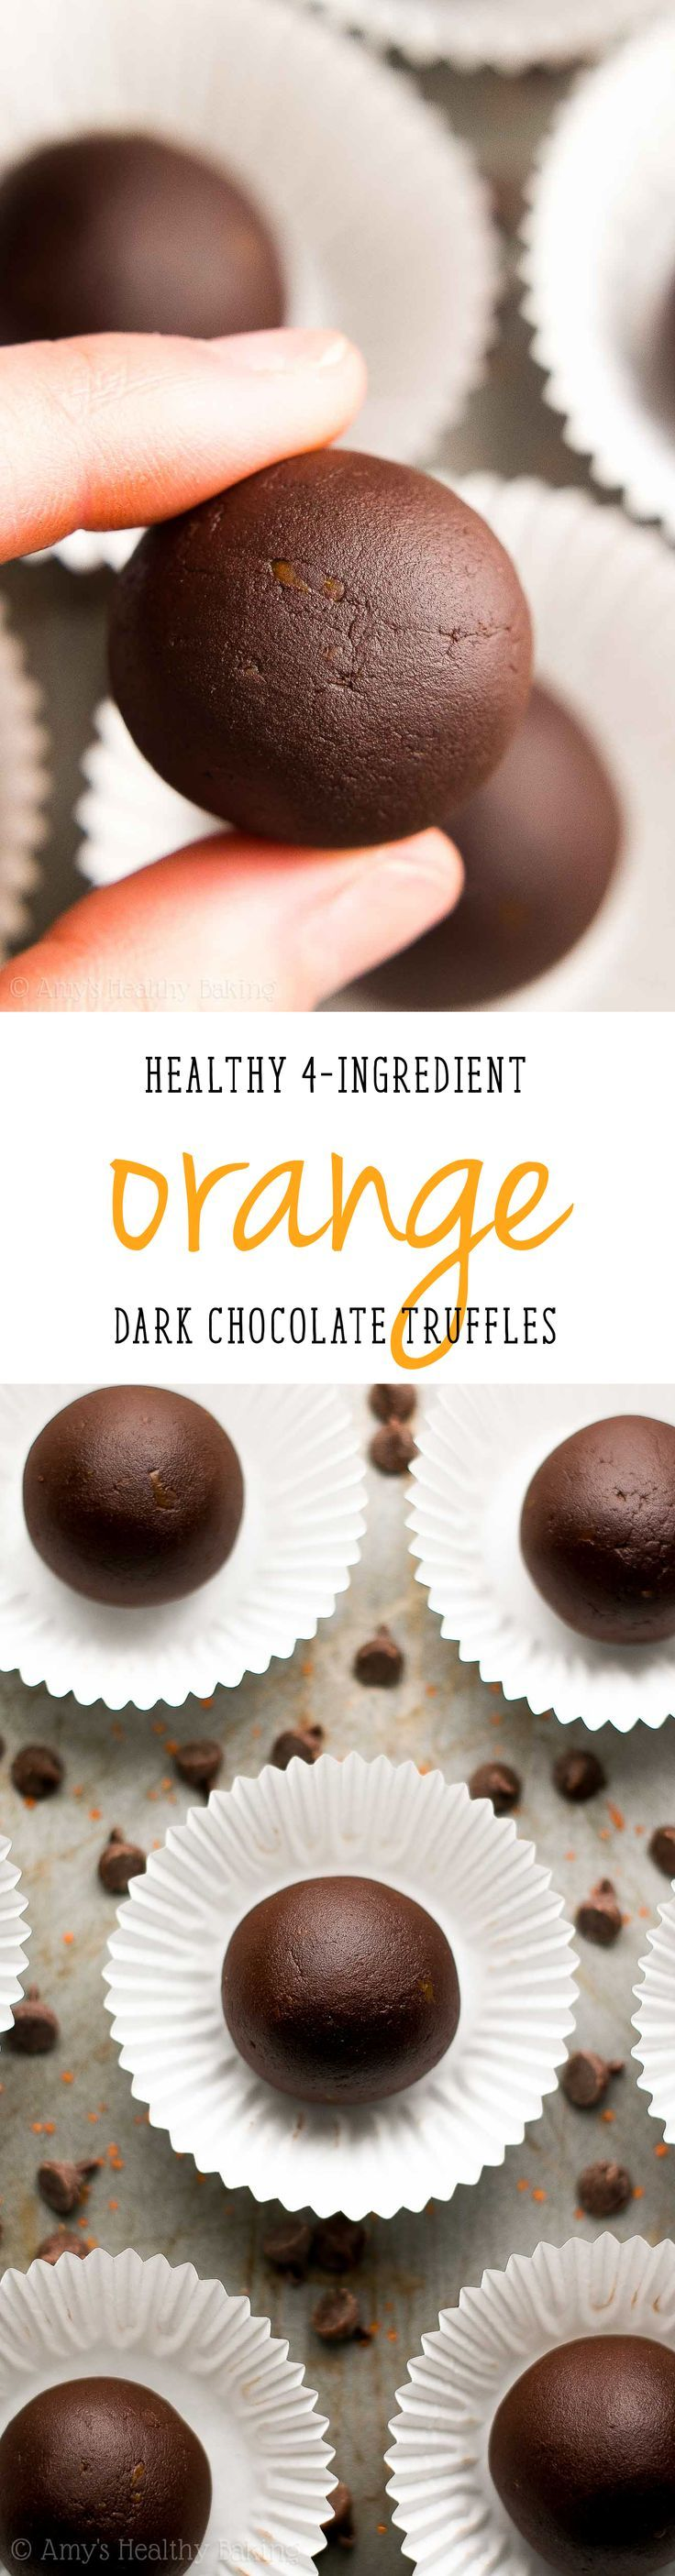 Healthy Dark Chocolate Orange Truffles -- only 4 ingredients & 21 calories! This easy recipe tastes so fancy, even with NO heavy cream or sugar!